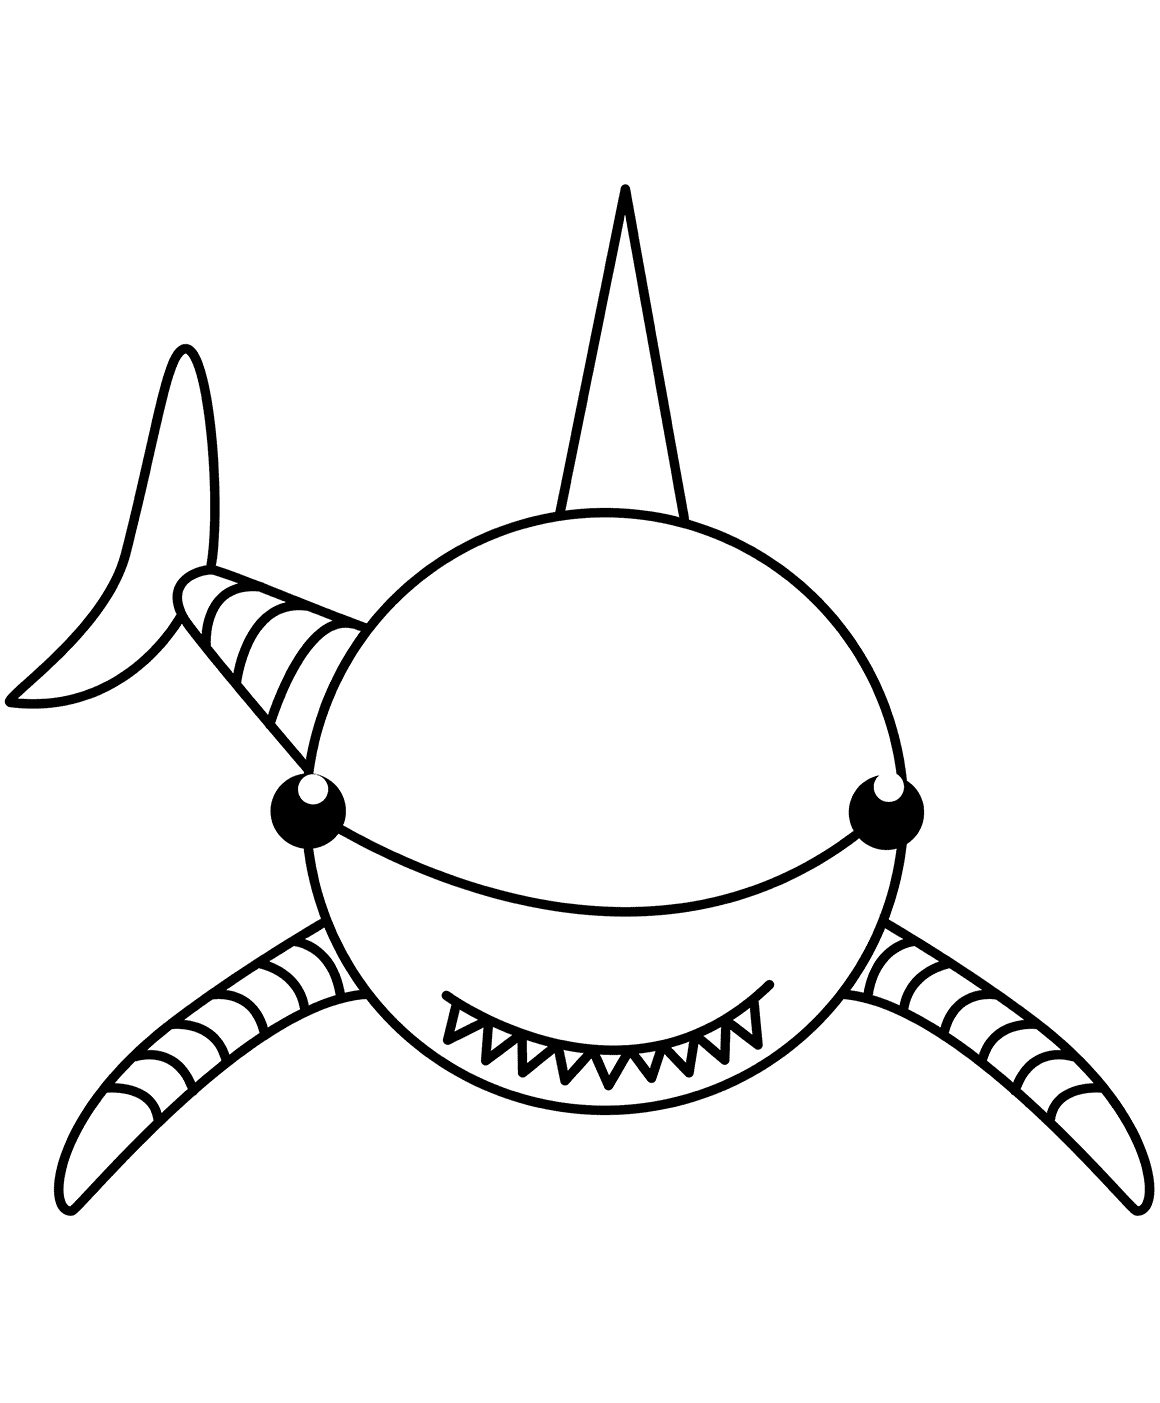 shark coloring pictures to print free printable shark coloring pages for kids coloring shark pictures print to